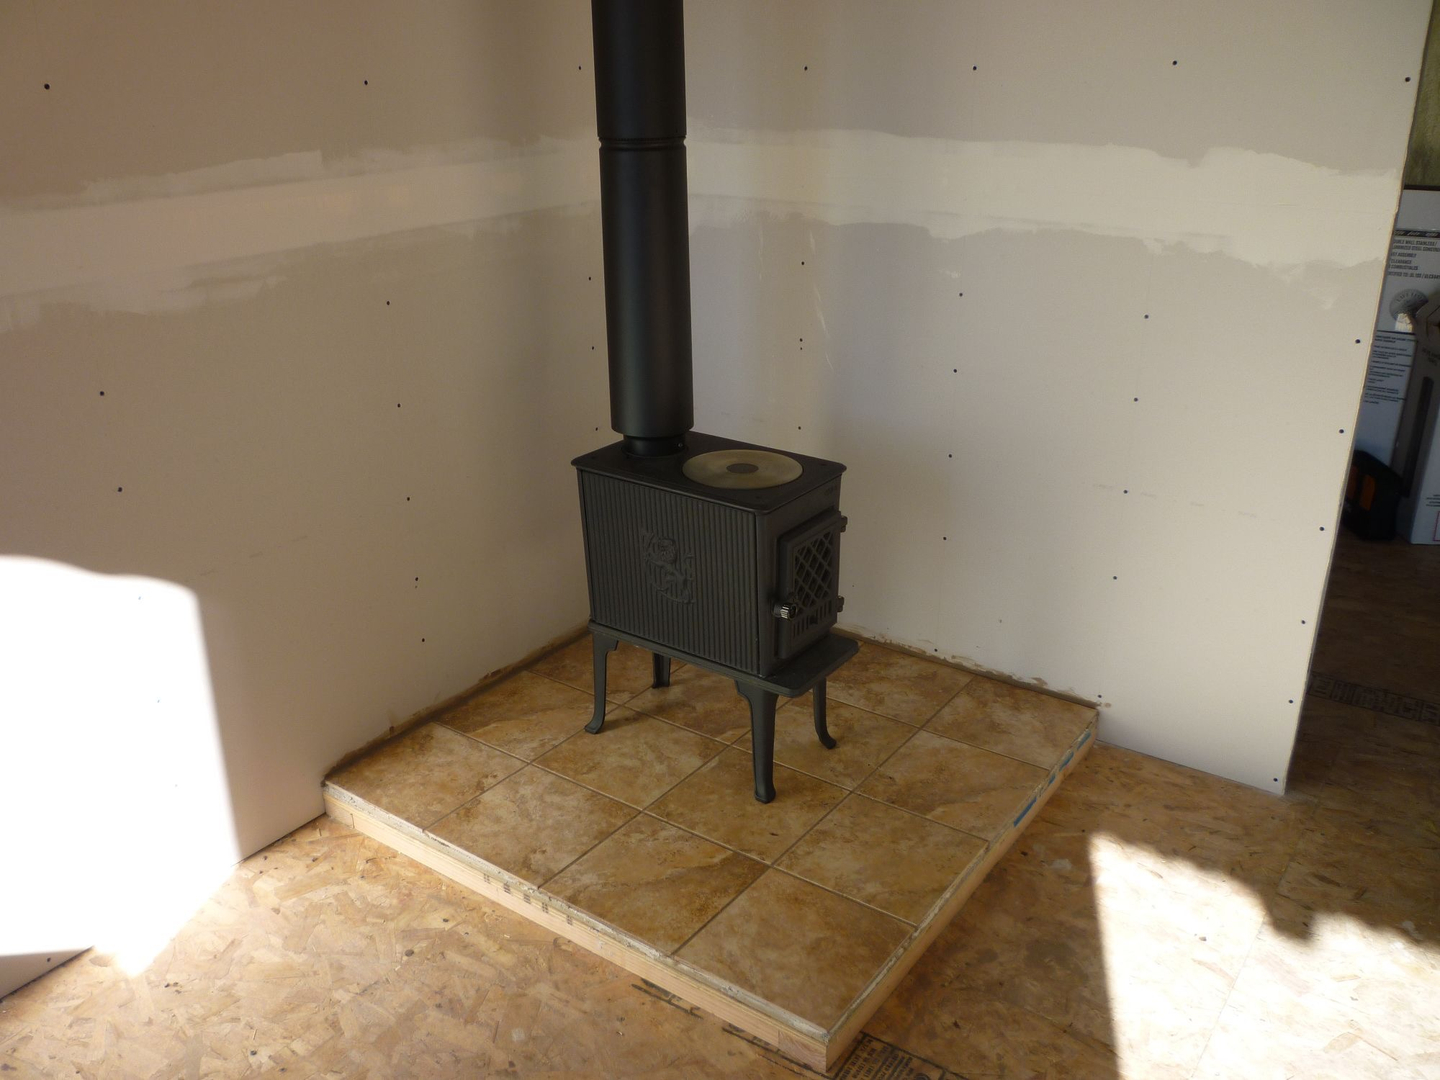 Lowes Wood Stoves WB Designs - Lowes Wood Burning Stove WB Designs